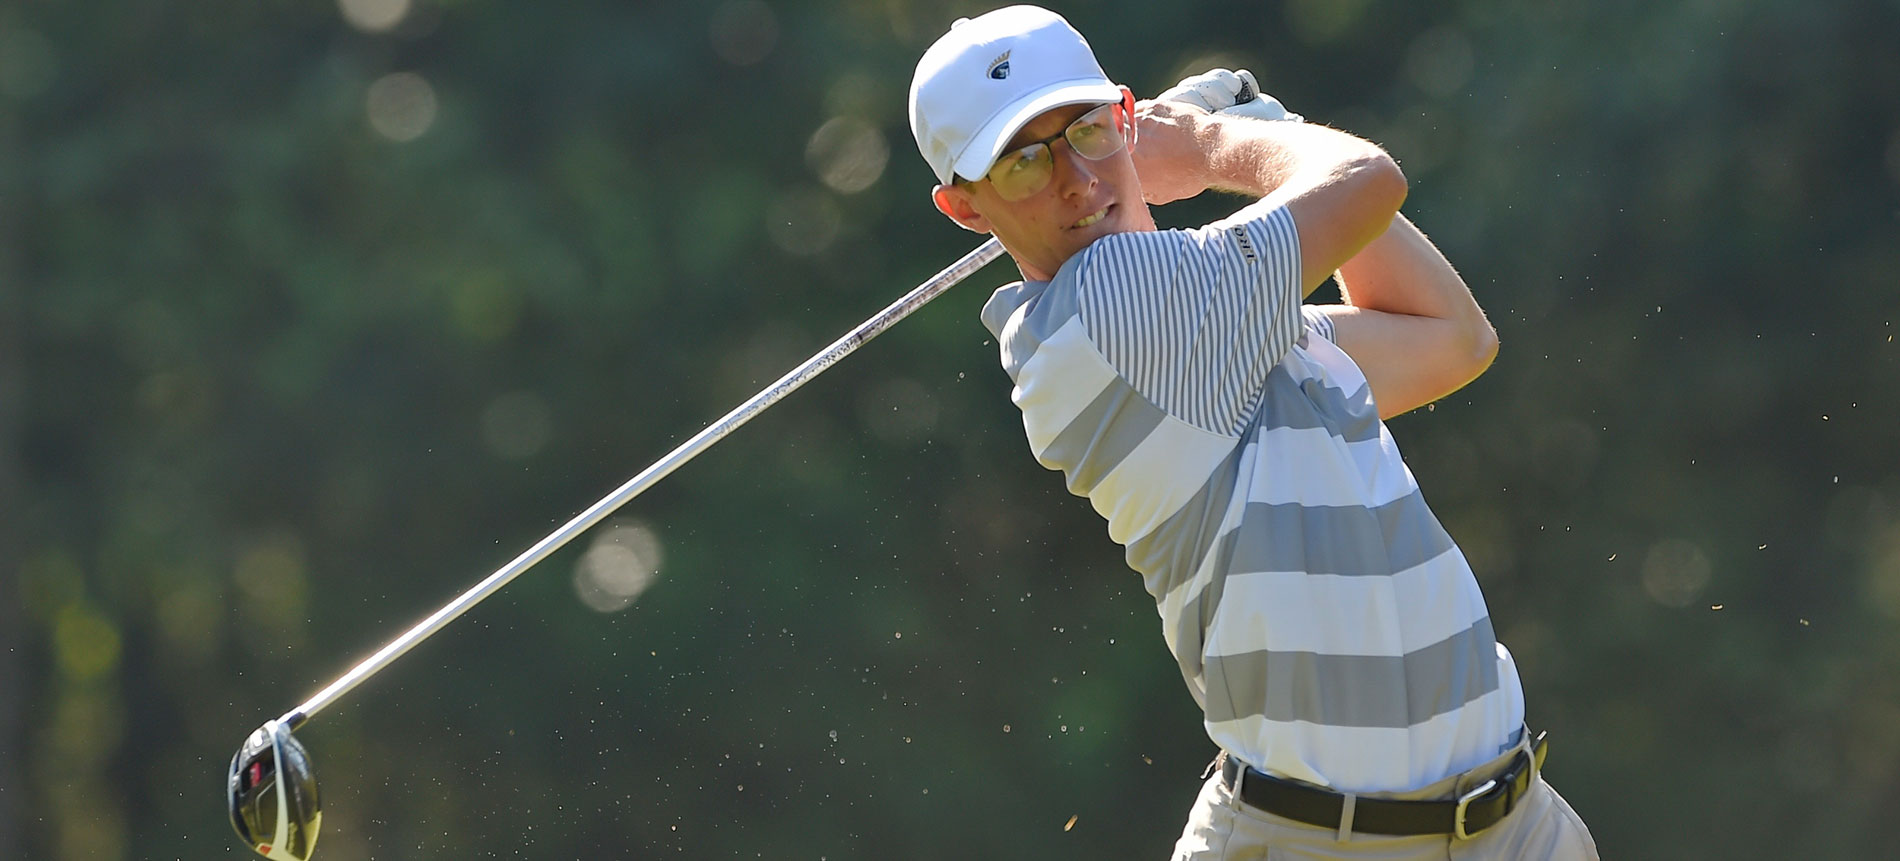 Miller Tied for 18th at South Carolina Golf Association Amateur Championship